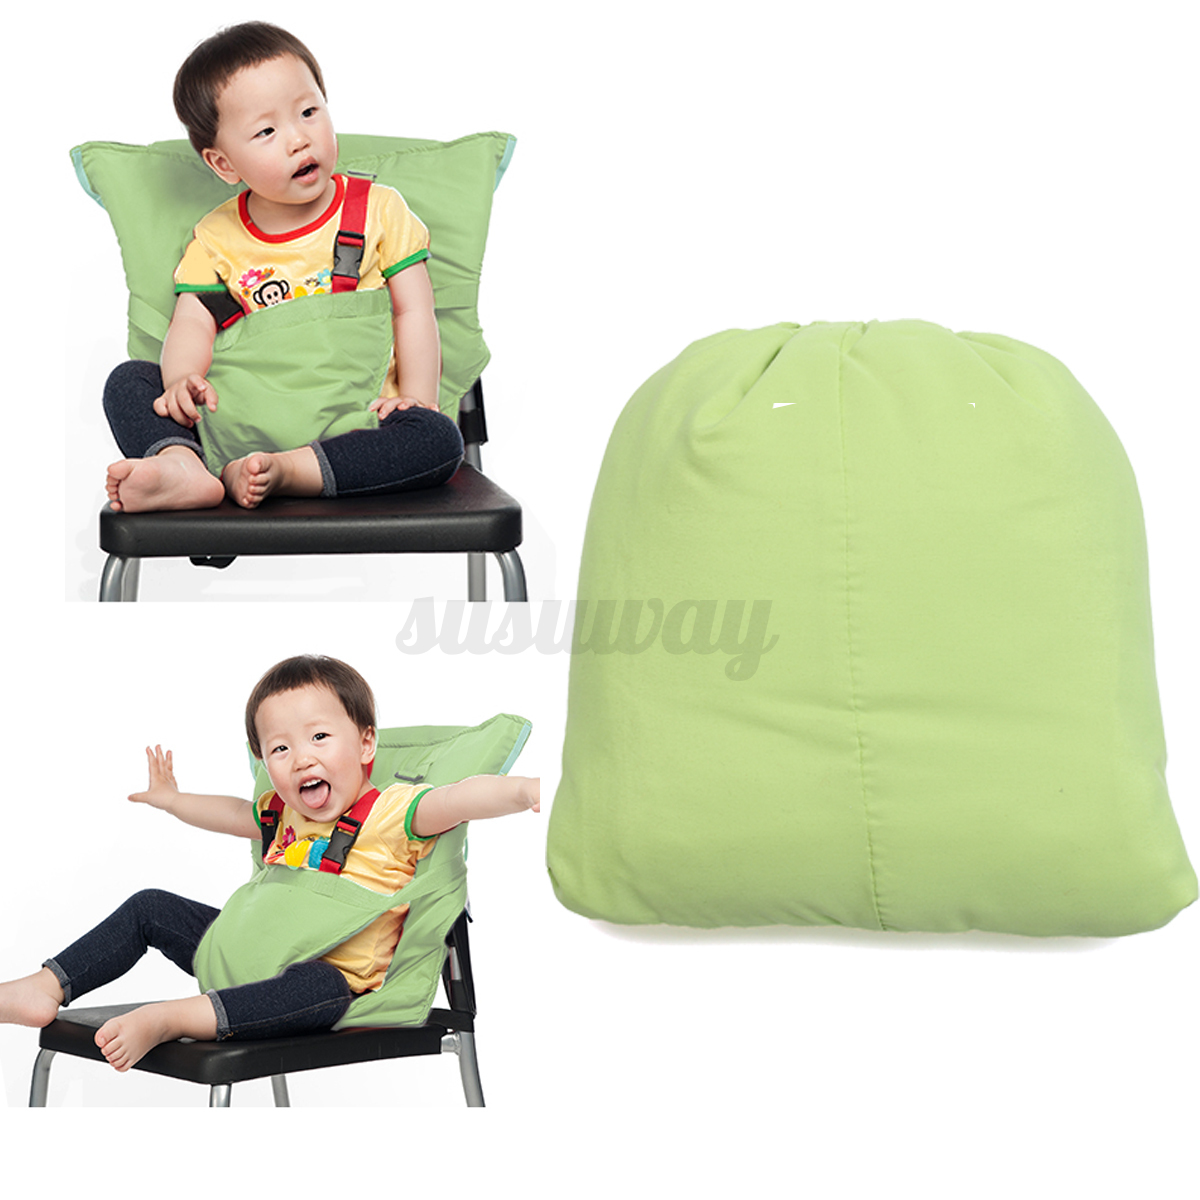 Crbogercom Portable High Chair Cover Portable Travel  : 01D78C8A8C8A889E97AE928D24C6B6666595EE661654D21405838BB024BE1456CFBB9D8B10969E9203C8CBCDA0FF1323 from crboger.com size 1200 x 1200 jpeg 427kB